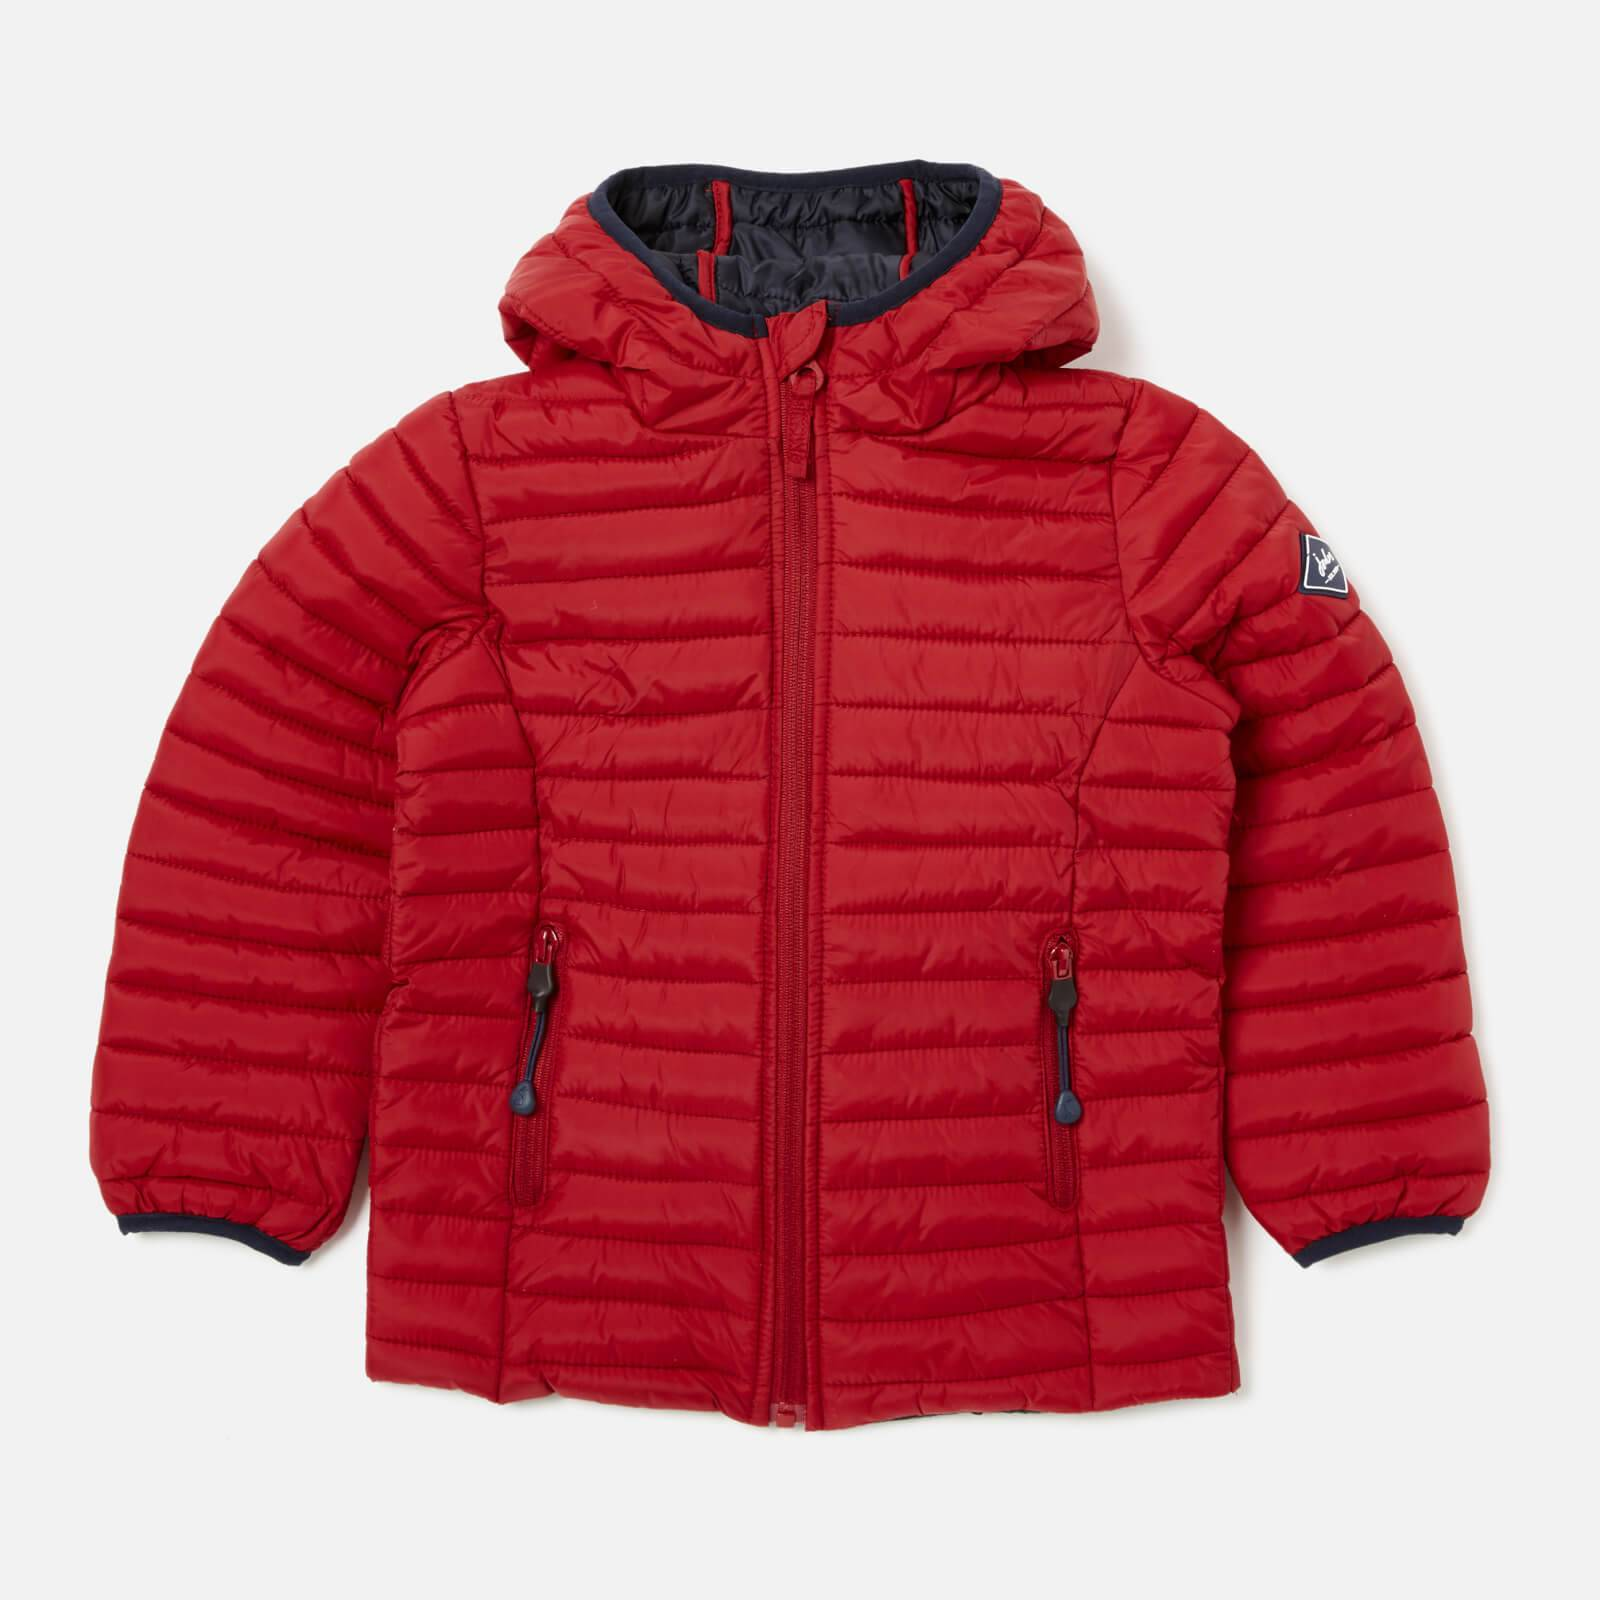 Joules Boys' Cairn Padded Jacket - Red - 4 Years - Red